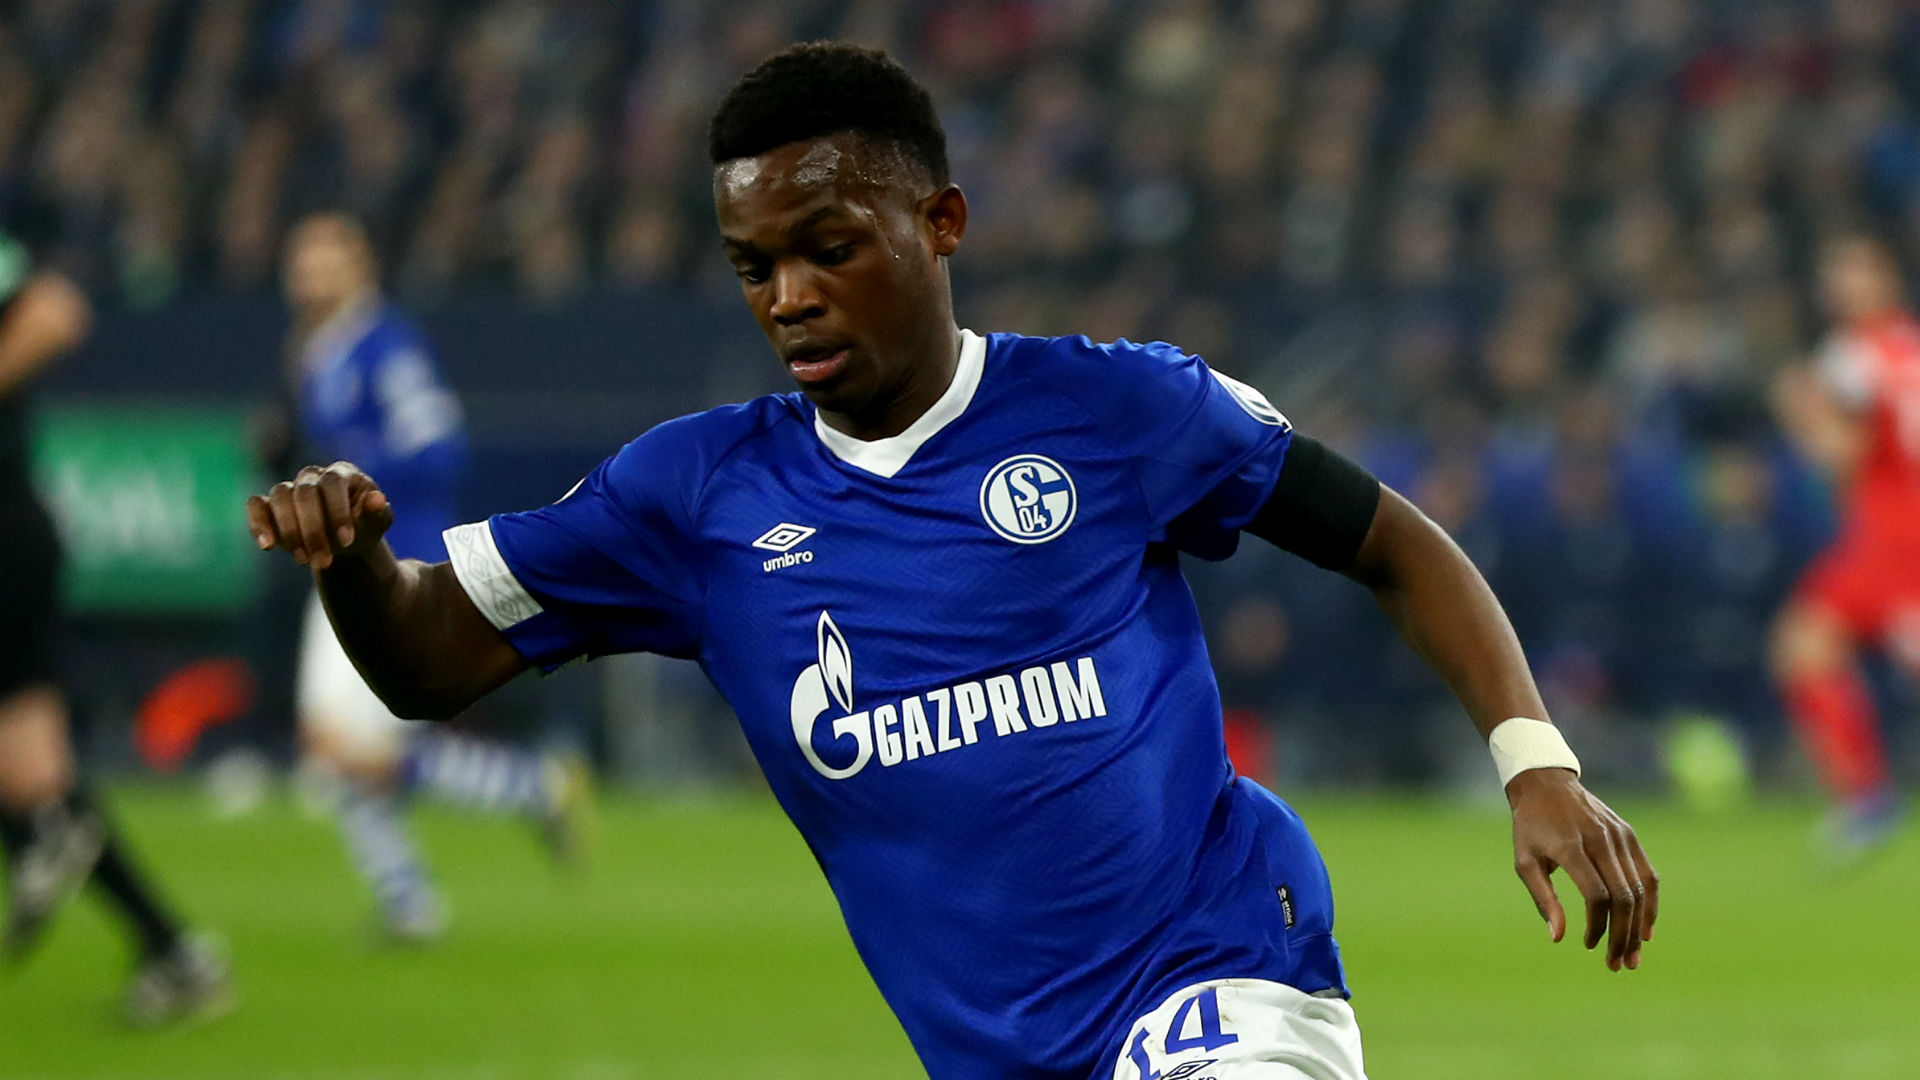 """dpa) Schalke 04 player Rabbi Matondo has apologised to the club's fans after being pictured training in the shirt of arch-rivals Borussia Dortmund. The 19-year-old Welsh winger said on social media he was """"naive"""" to wear the jersey of his friend and Borussia Dortmund player Jadon Sancho during a private session. """"I'm very sad and […]"""